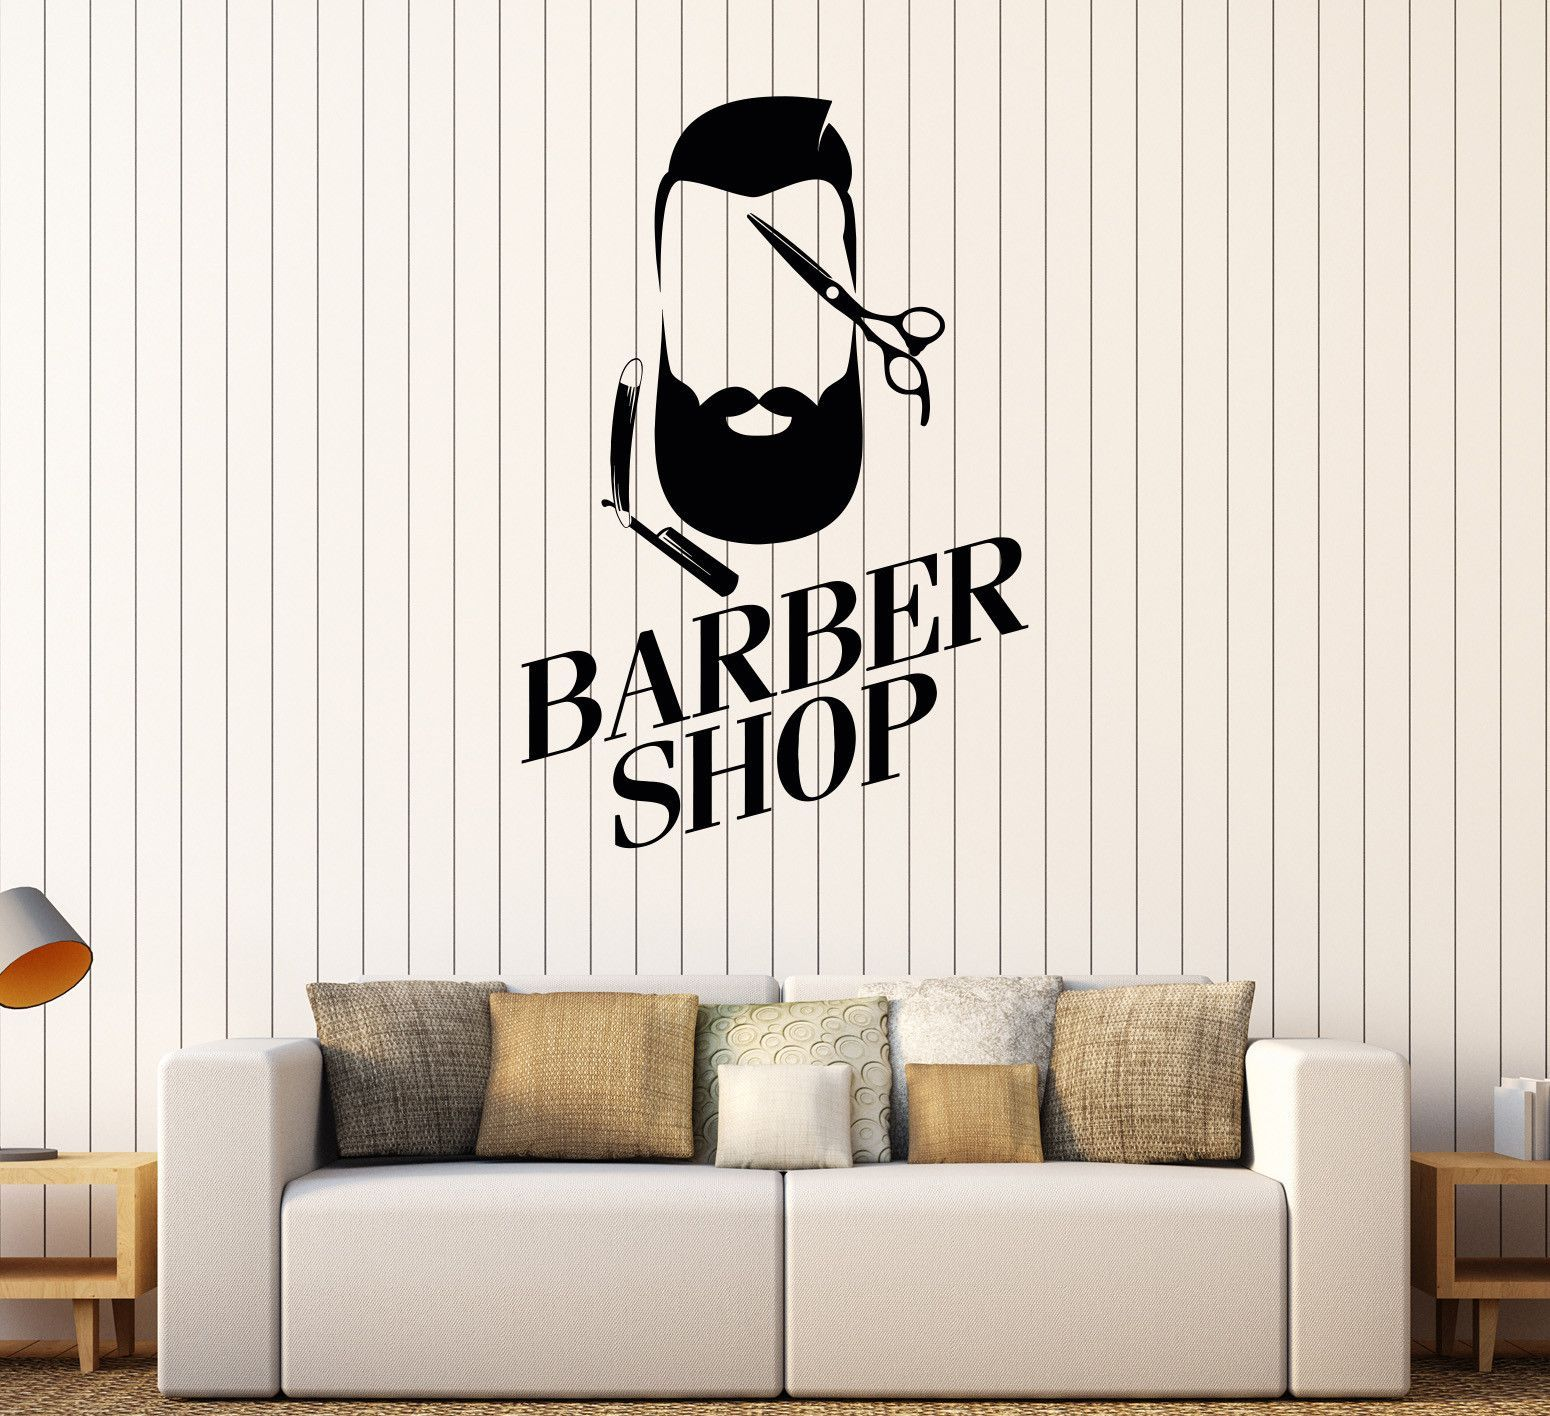 vinyl wall decal barber shop man hairdresser hair salon stylist vinyl wall decal barber shop man hairdresser hair salon stylist stickers 463ig